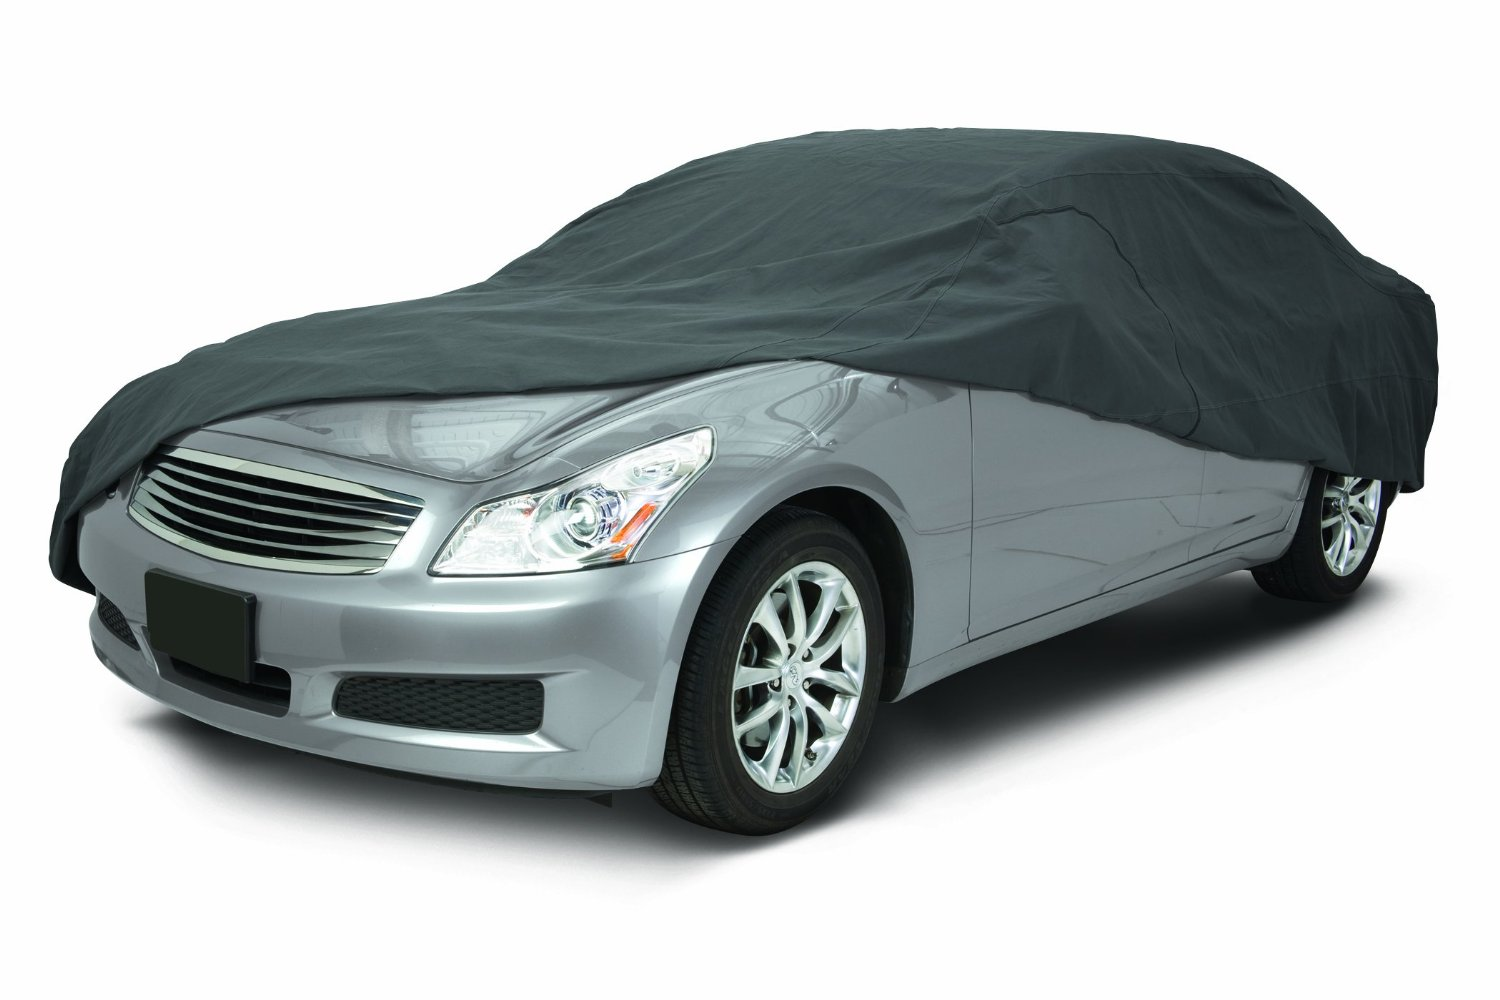 Microbead Car Covers